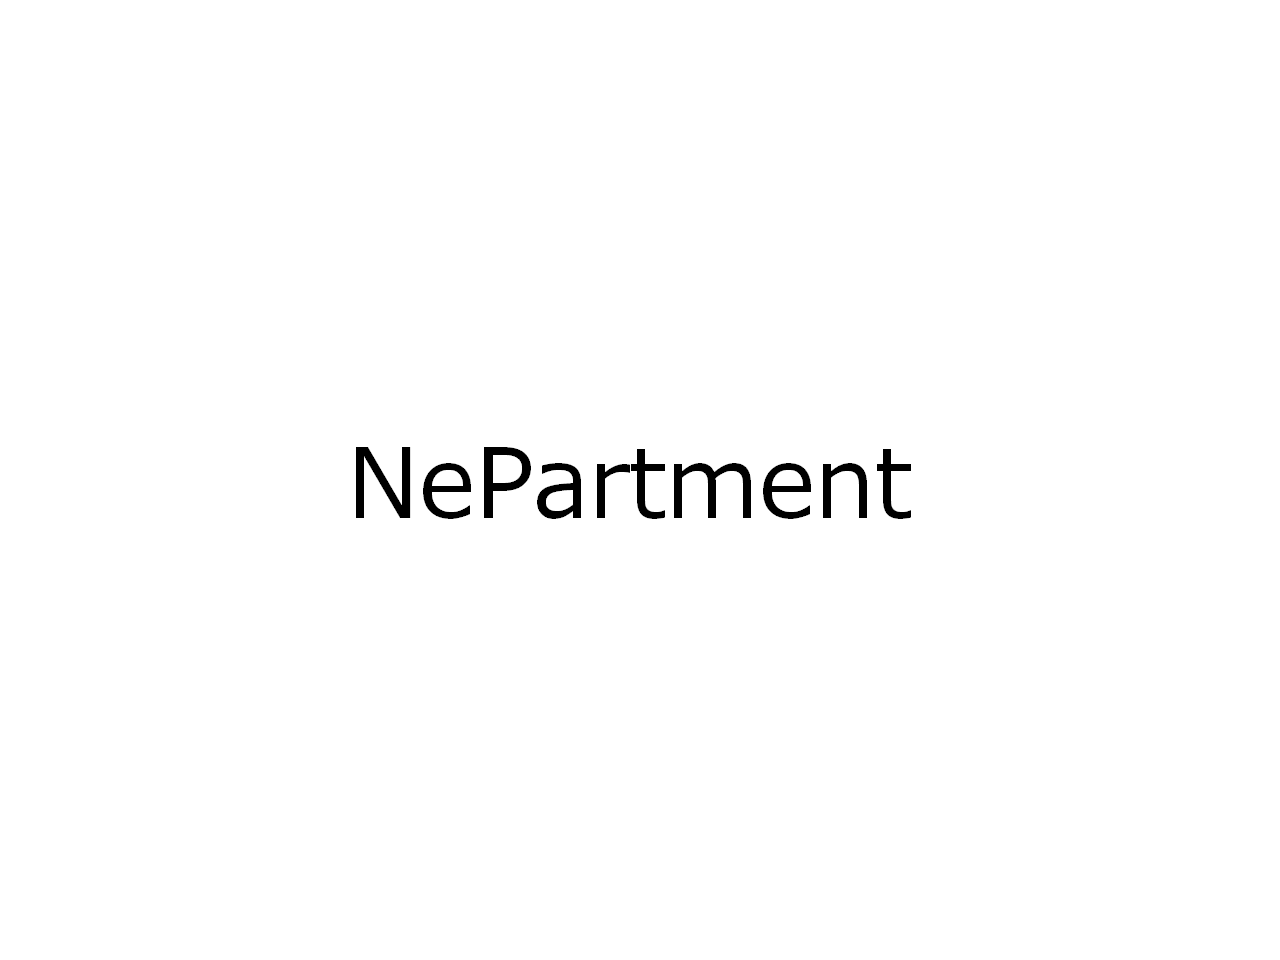 nepartment